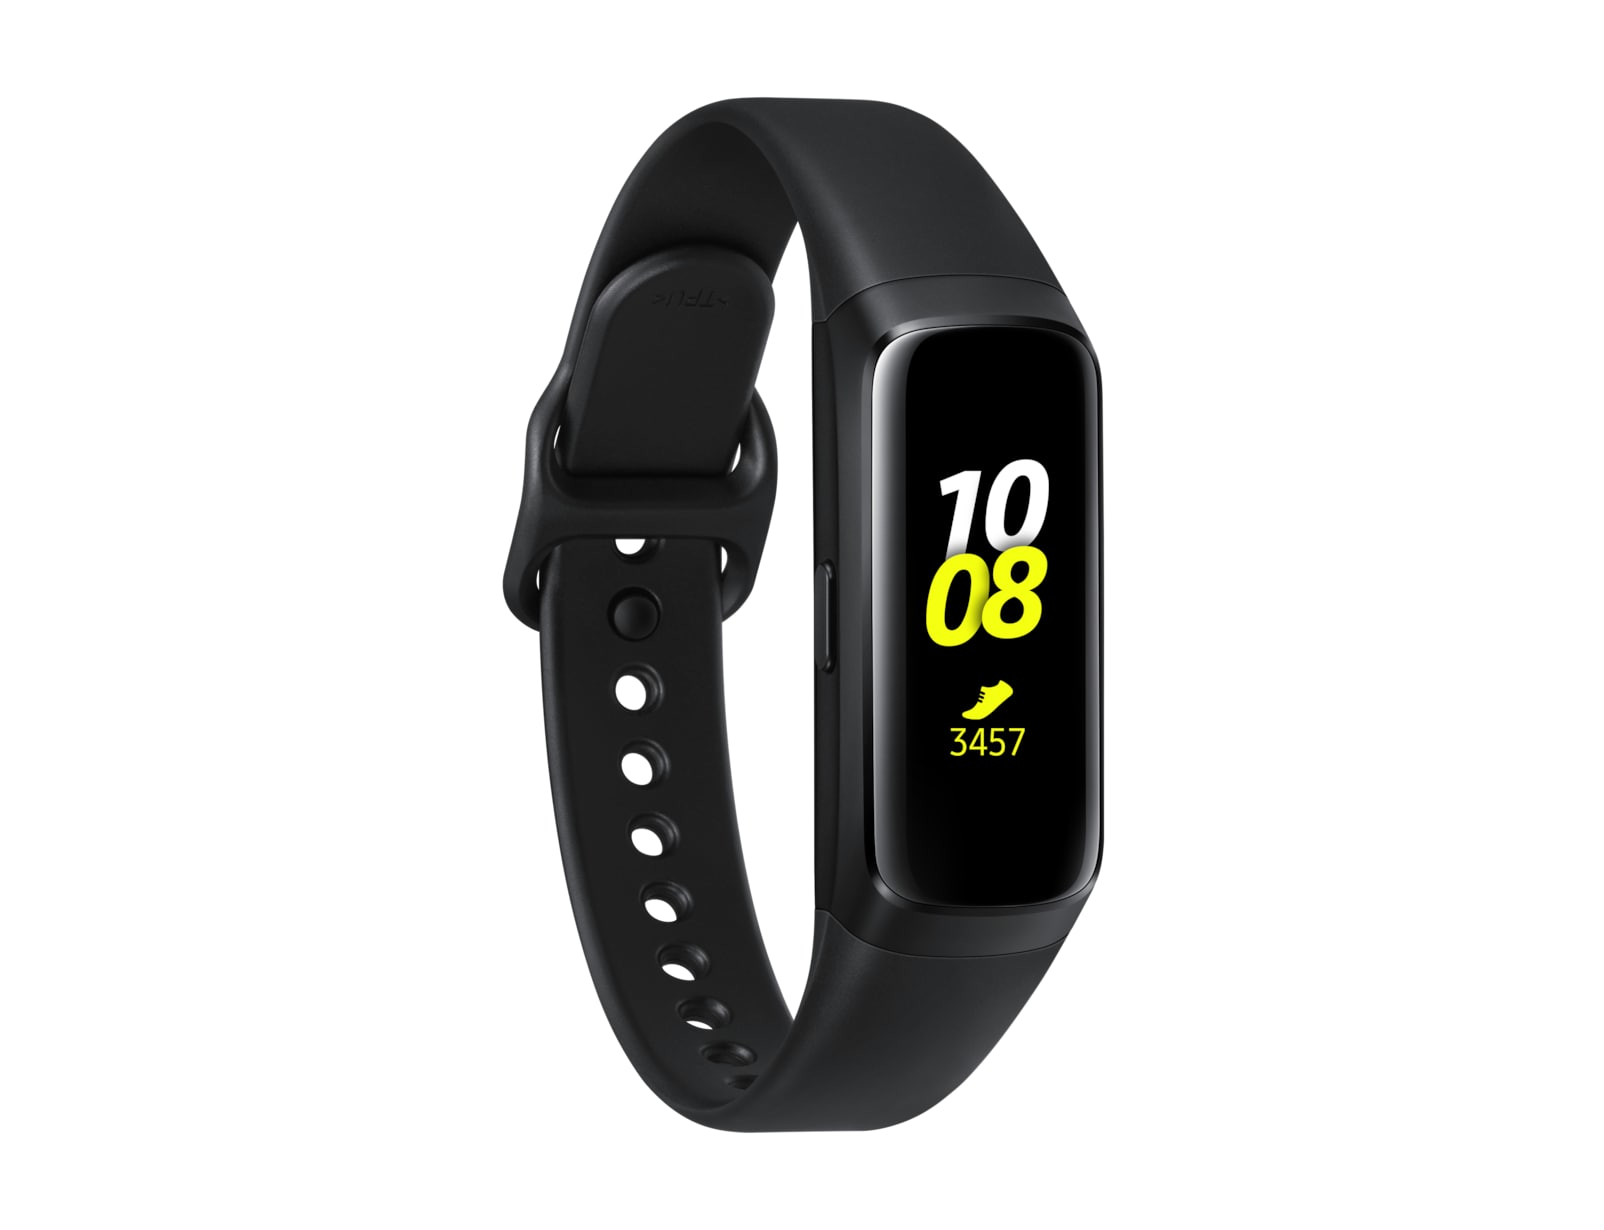 Samsung Galaxy Fit - Black - activity tracker with strap - fluoroelastomer - black - band size 132-1